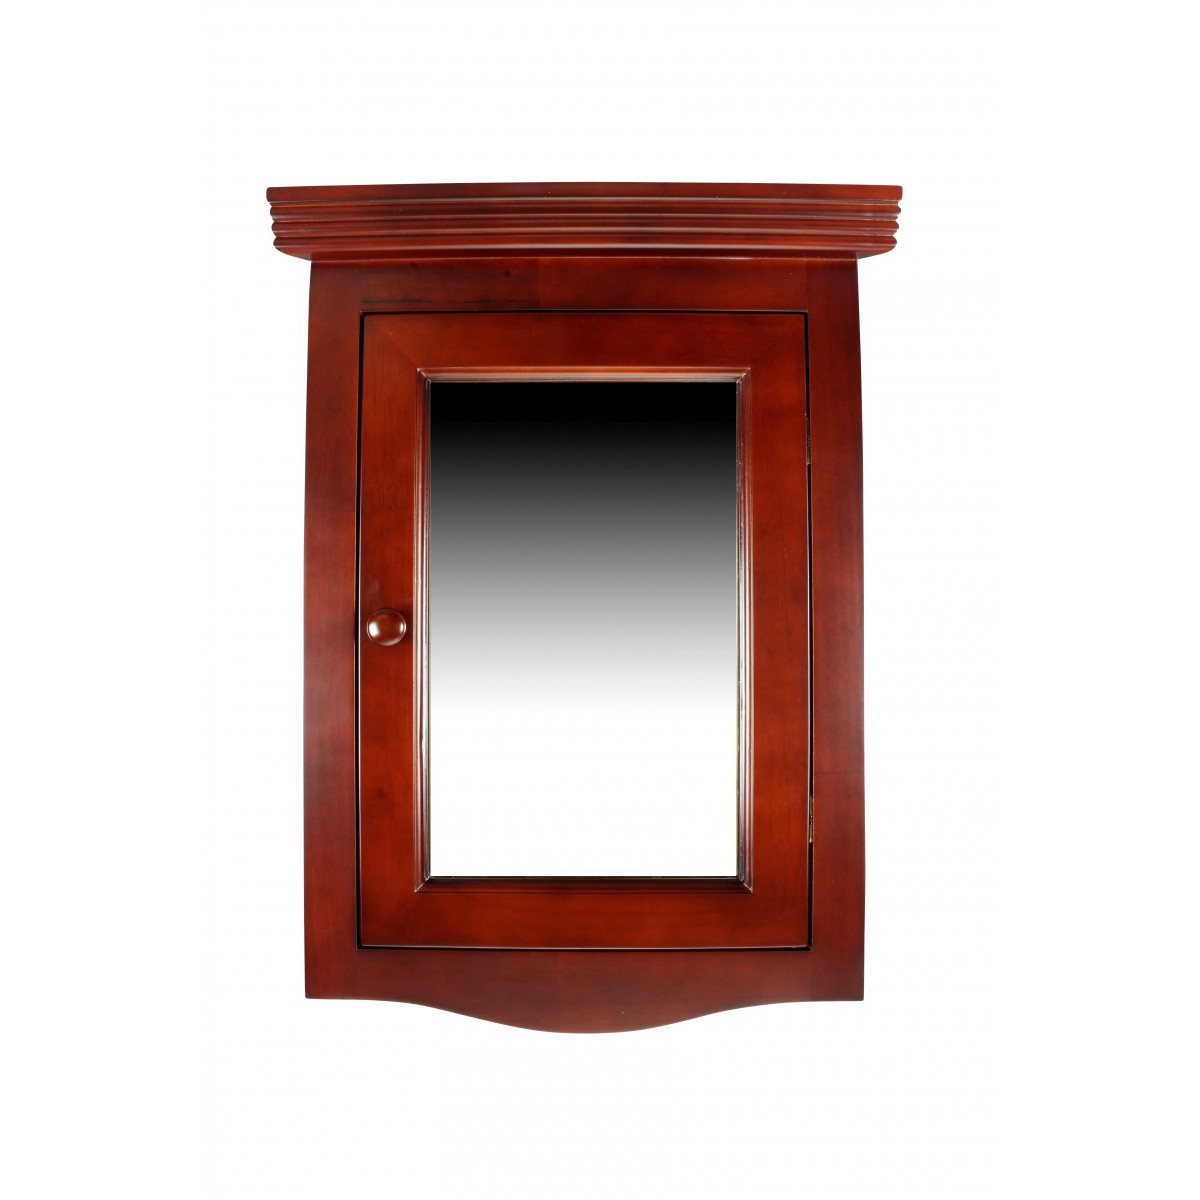 Charmant ... U003cPREu003eCherry Hard Wood Corner Wall Mount Medicine Cabinet Mirror Fully  Assembled U003c ...